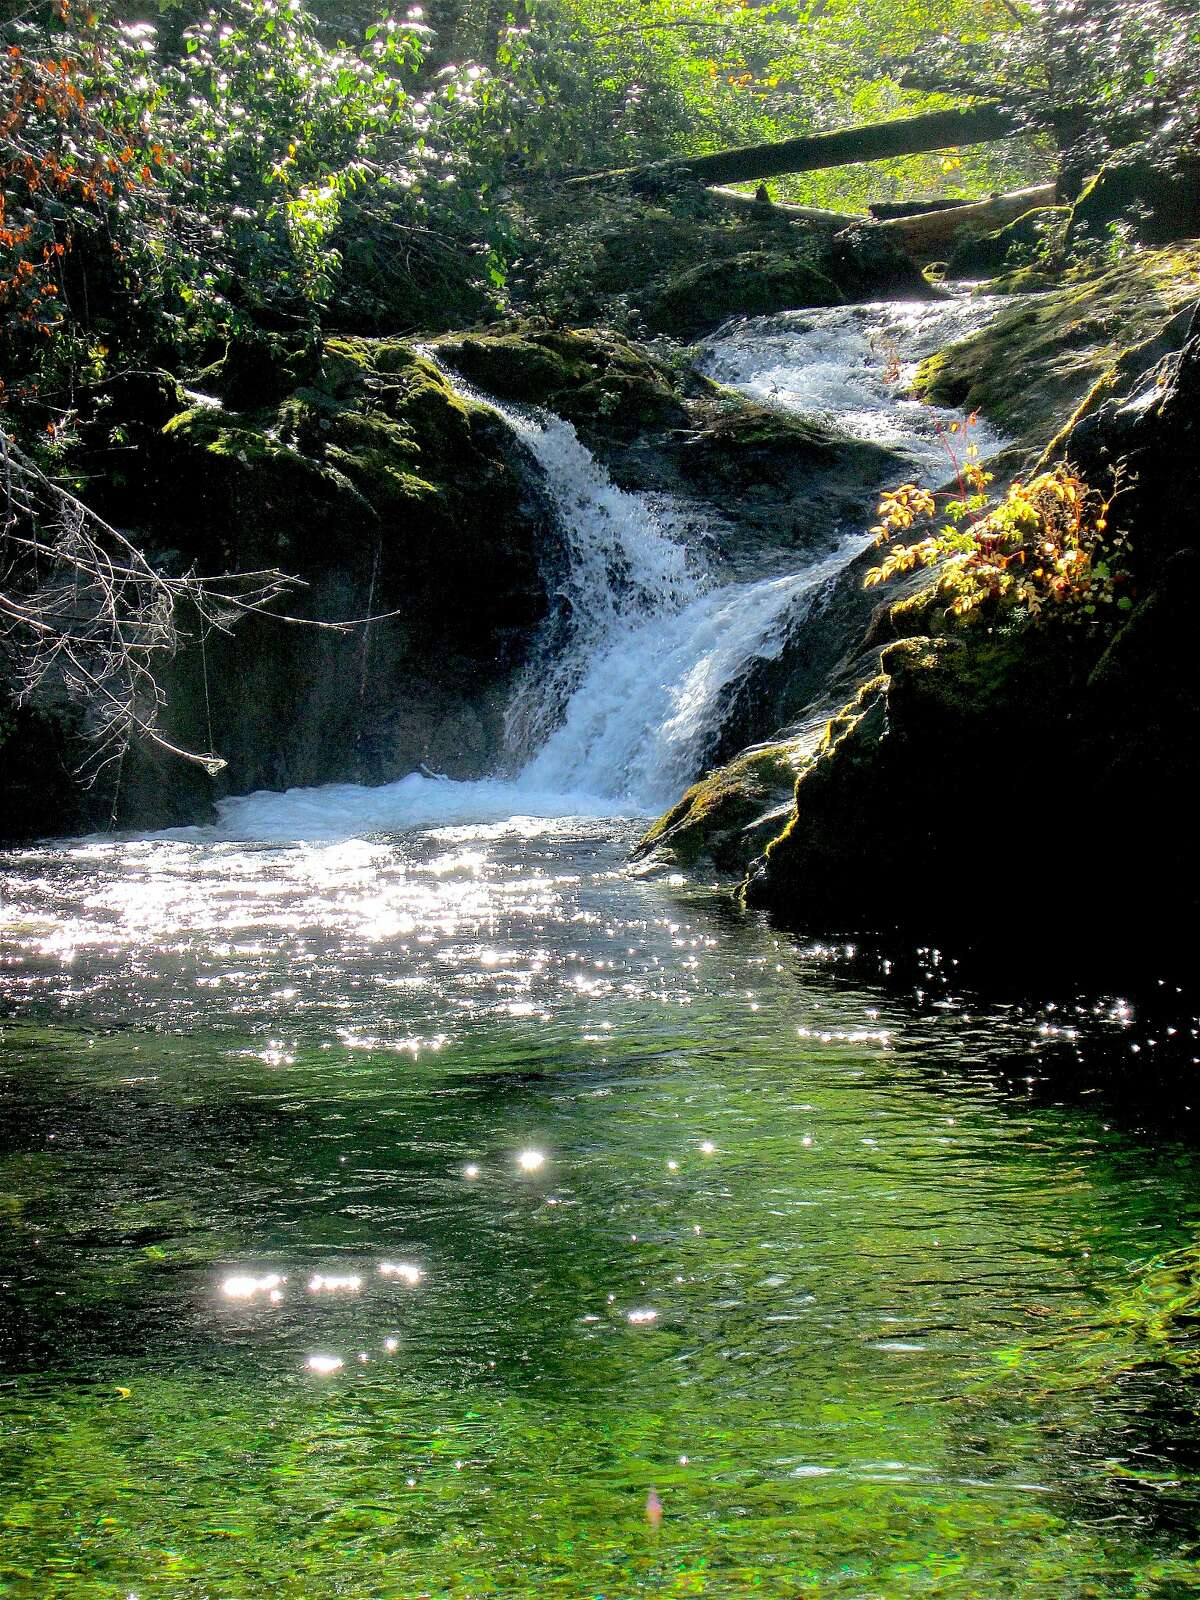 Buck Creek is a tributary to the Smith River and accessed on the Kelsey Trail in the Smith River National Recreation Area